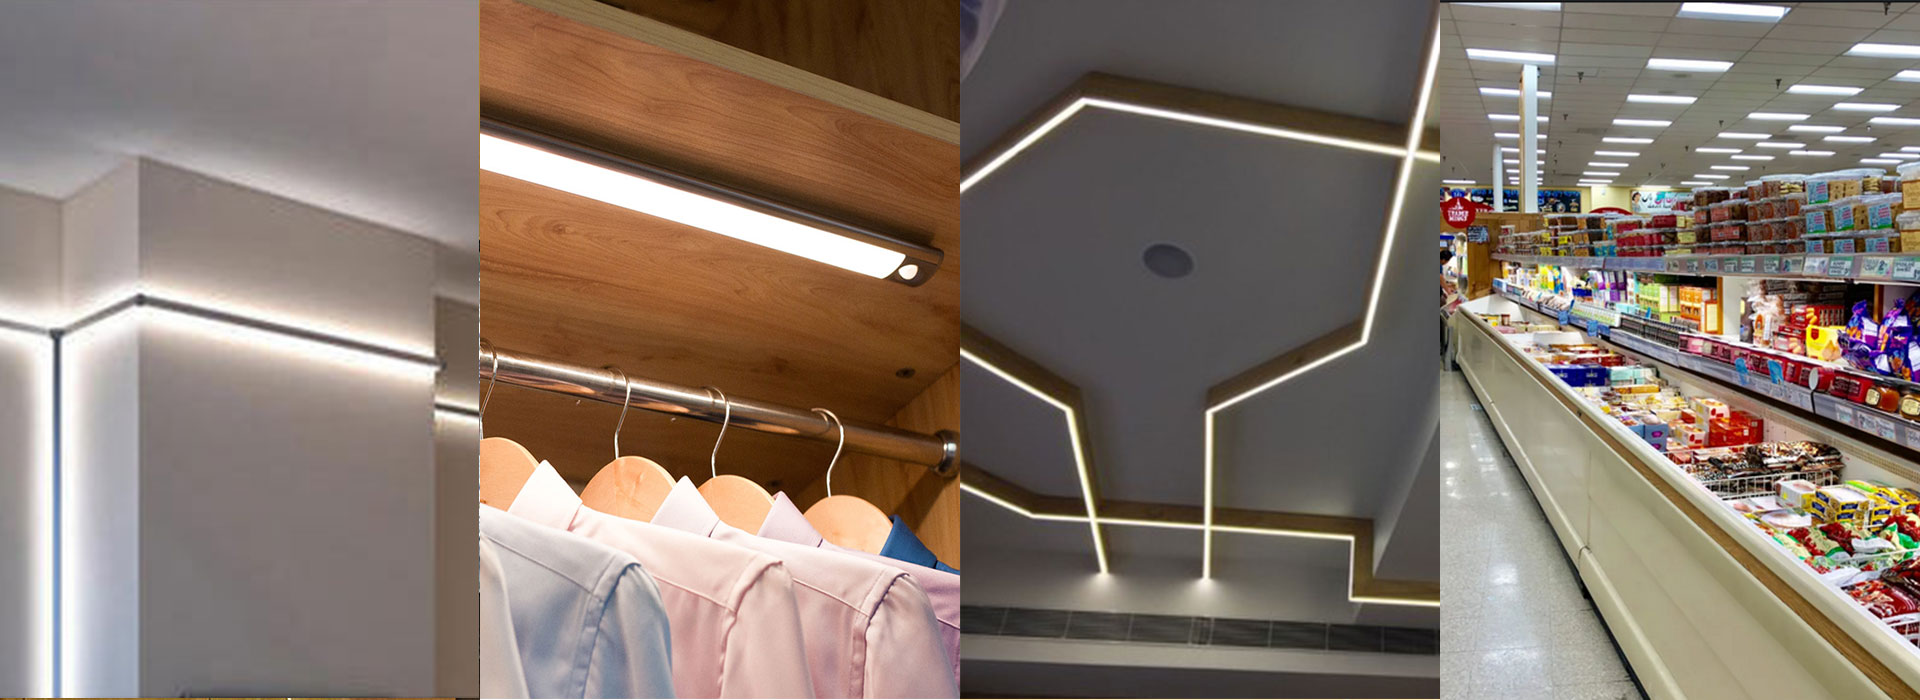 Application of LED strip light ideas installation channel